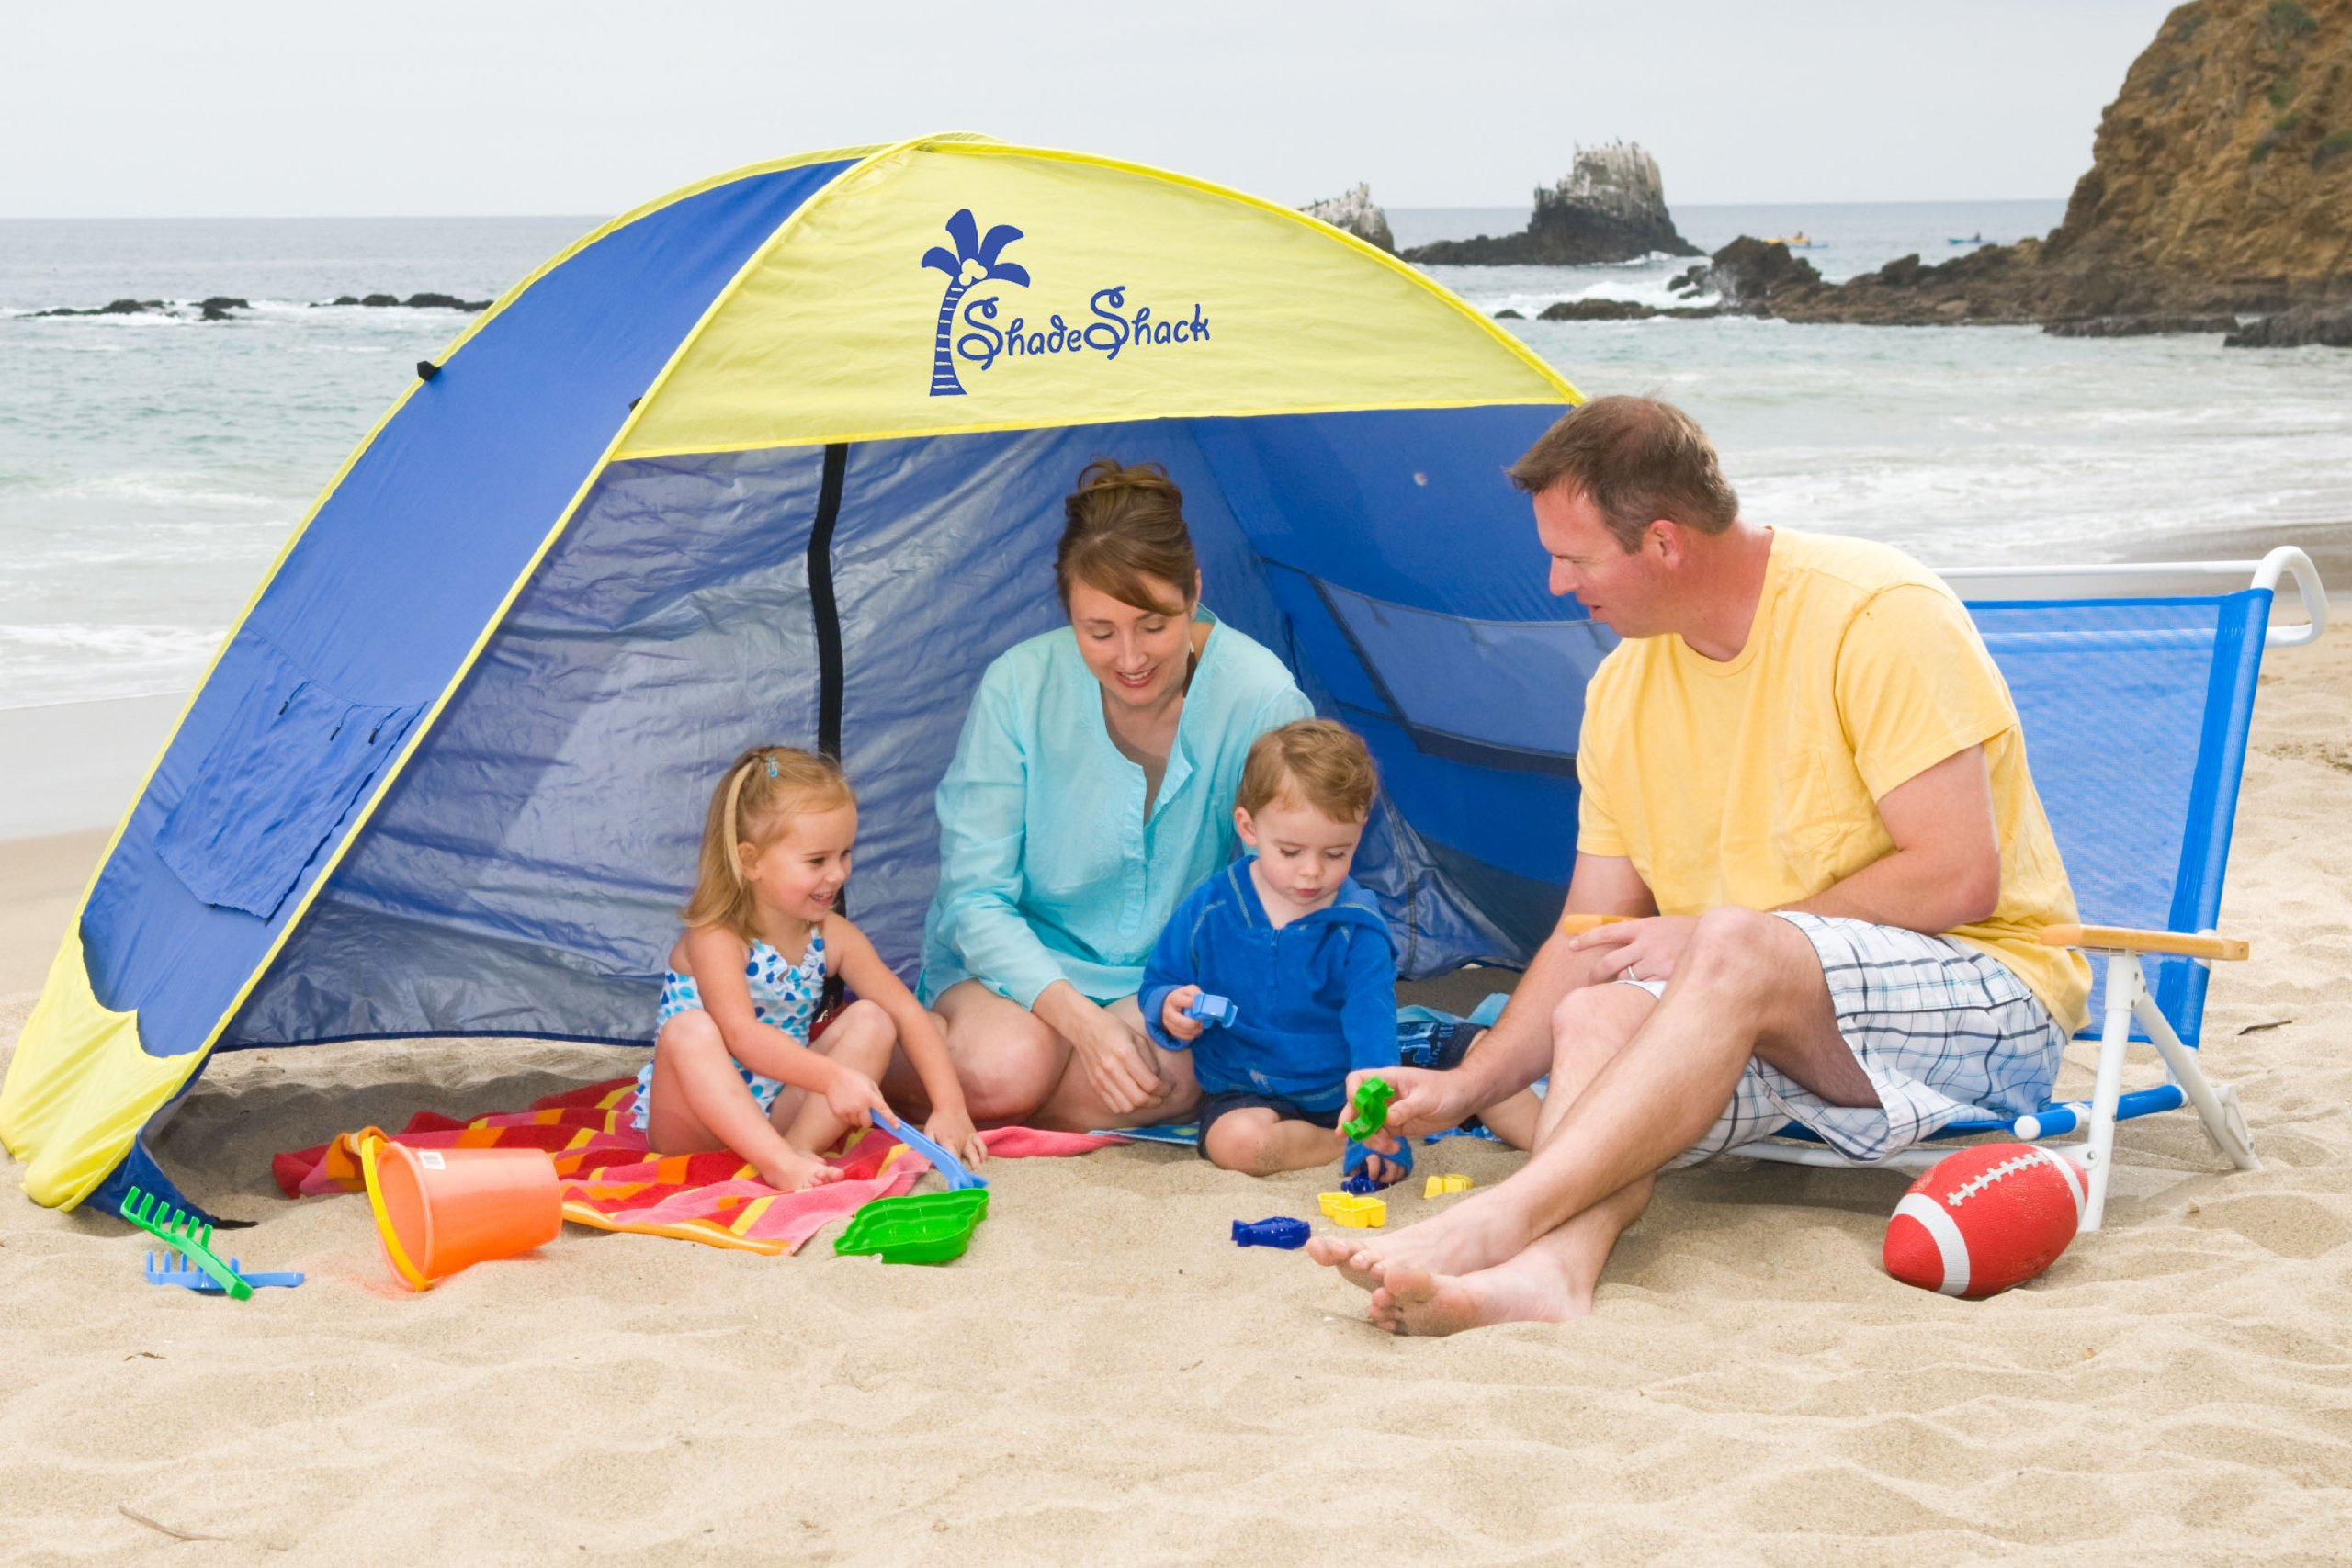 Shade Shack Beach Tent Easy Automatic Instant Pop Up Camping Sun Shelter - Blue/Yellow - Large by Shade Shack